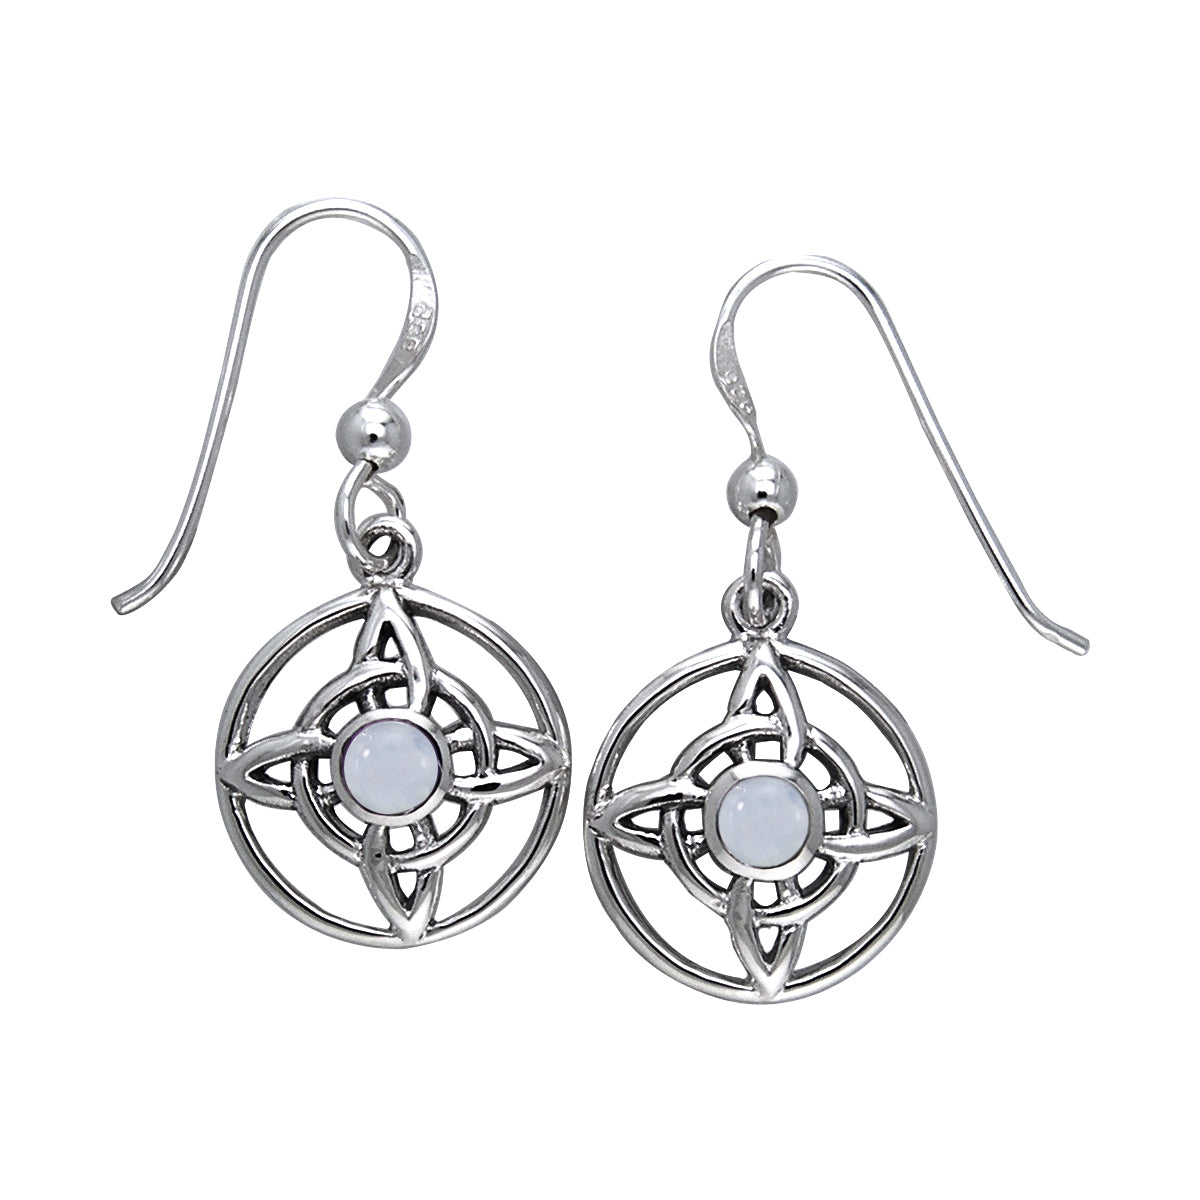 Jewelry Trends Sterling Silver Celtic Quaternary Knot Dangle Earrings with Rainbow Moonstone Stones